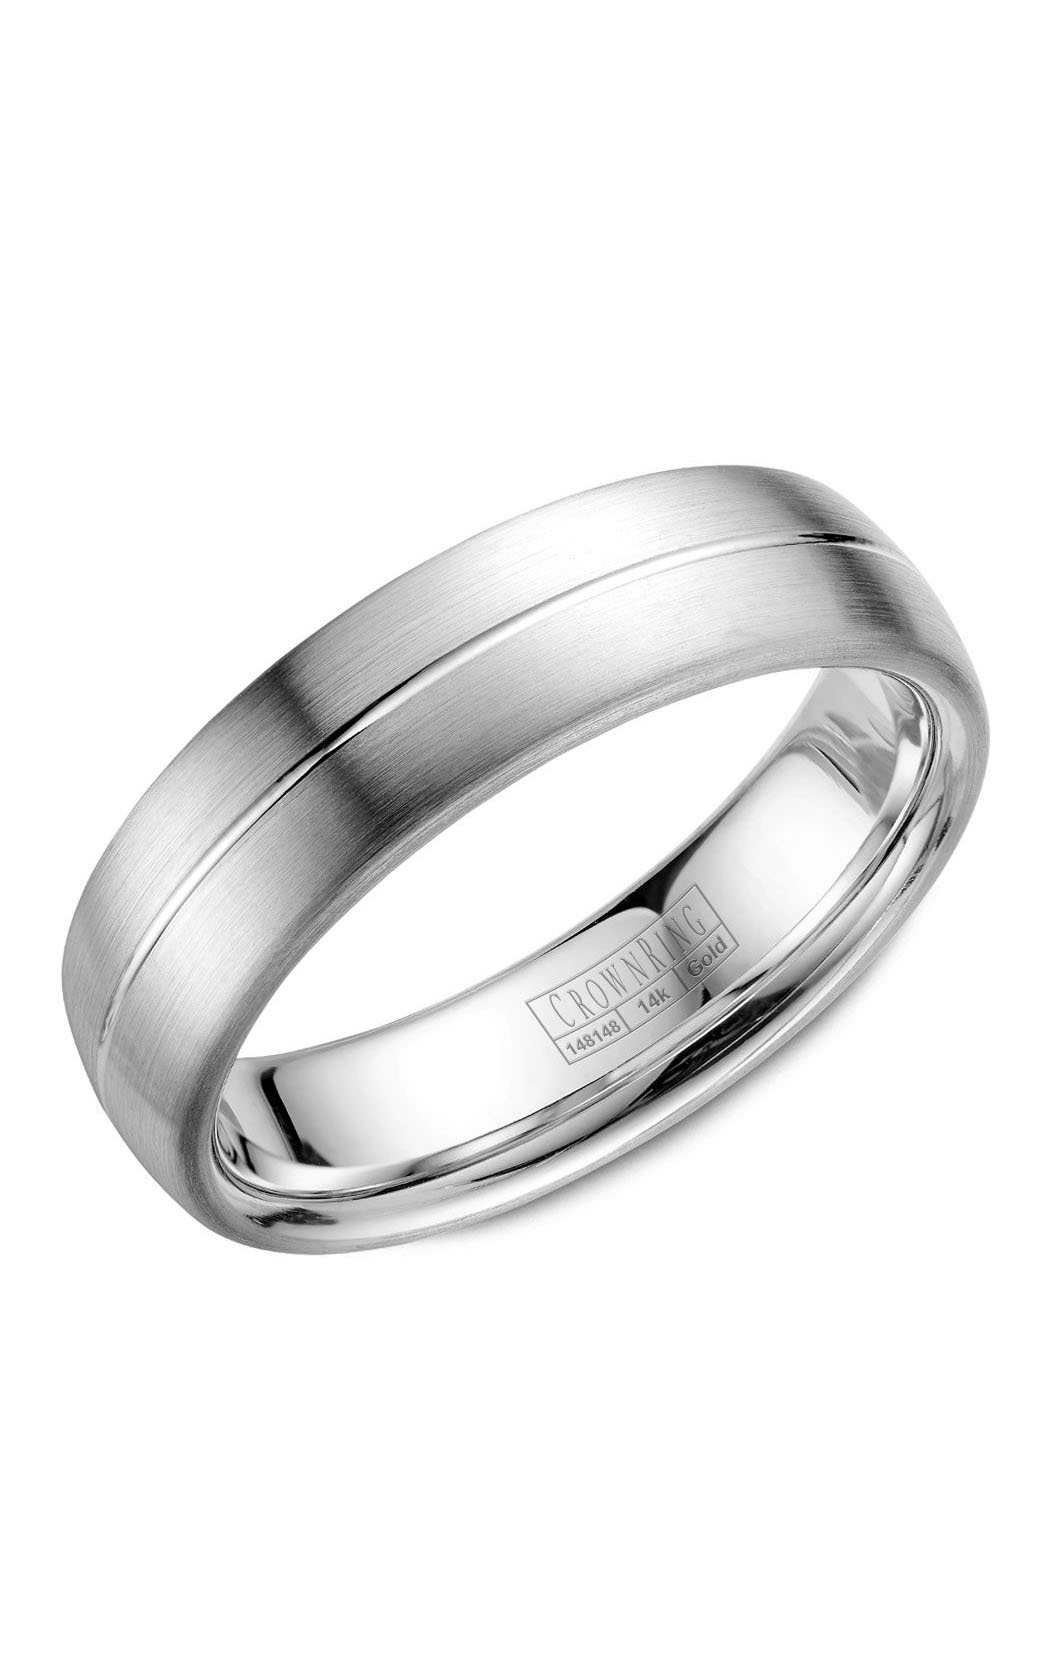 Crown Ring Men's Wedding Band WB-037C6W product image